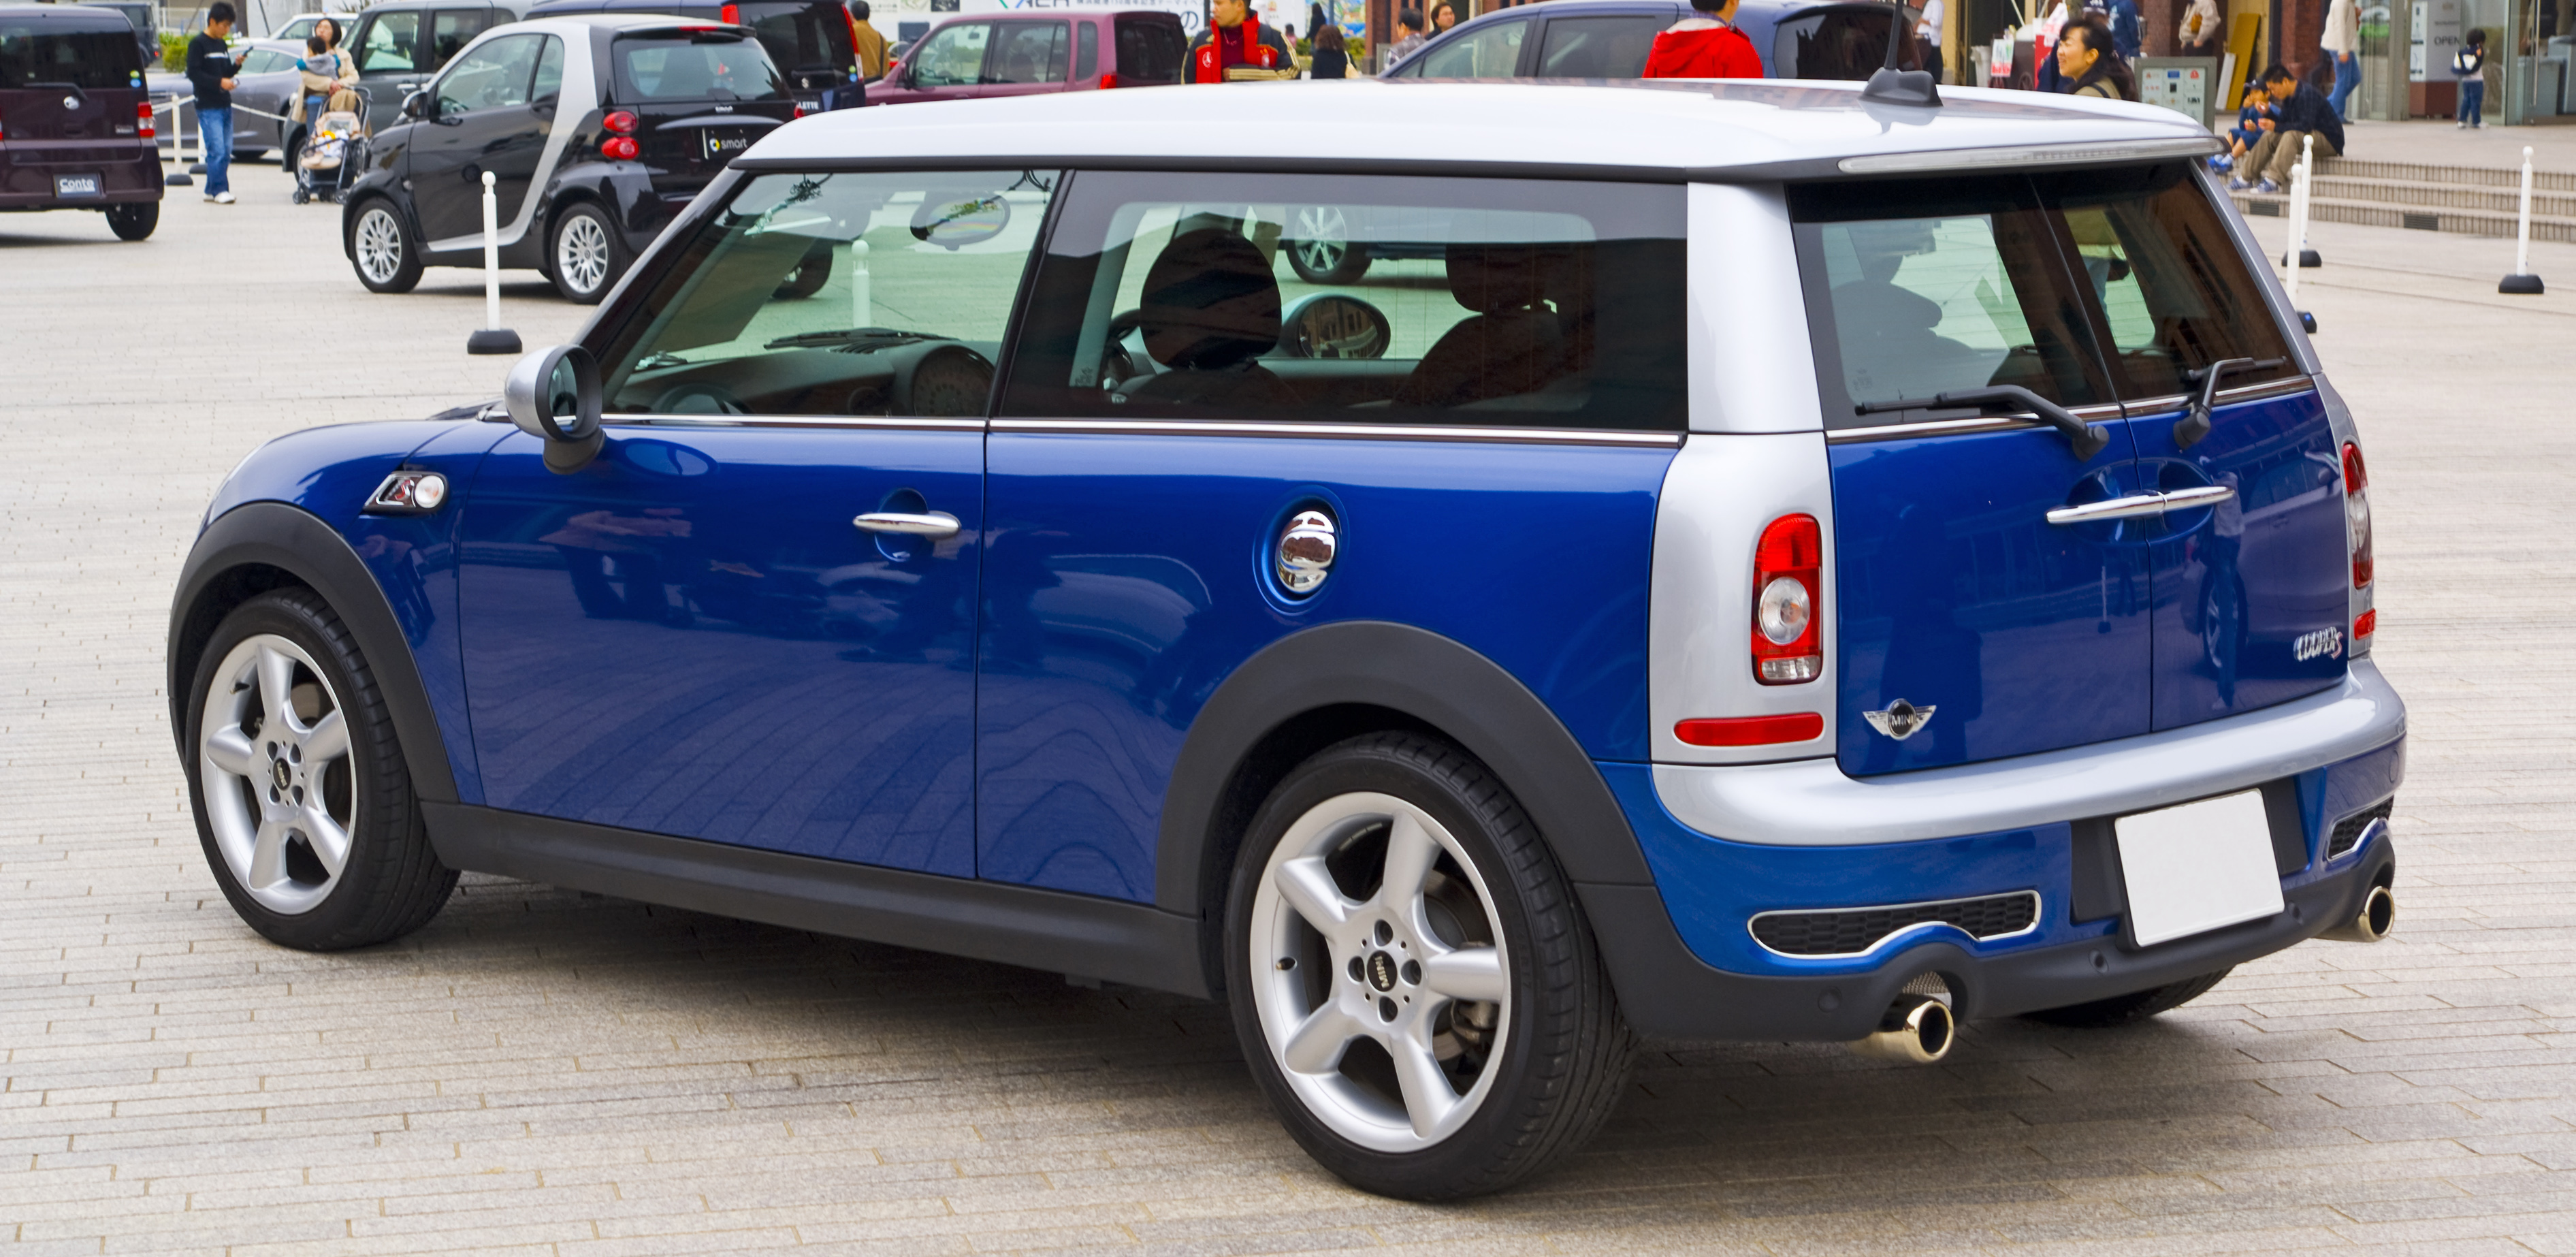 File:MINI Cooper S Clubman 02.JPG - Wikimedia Commons